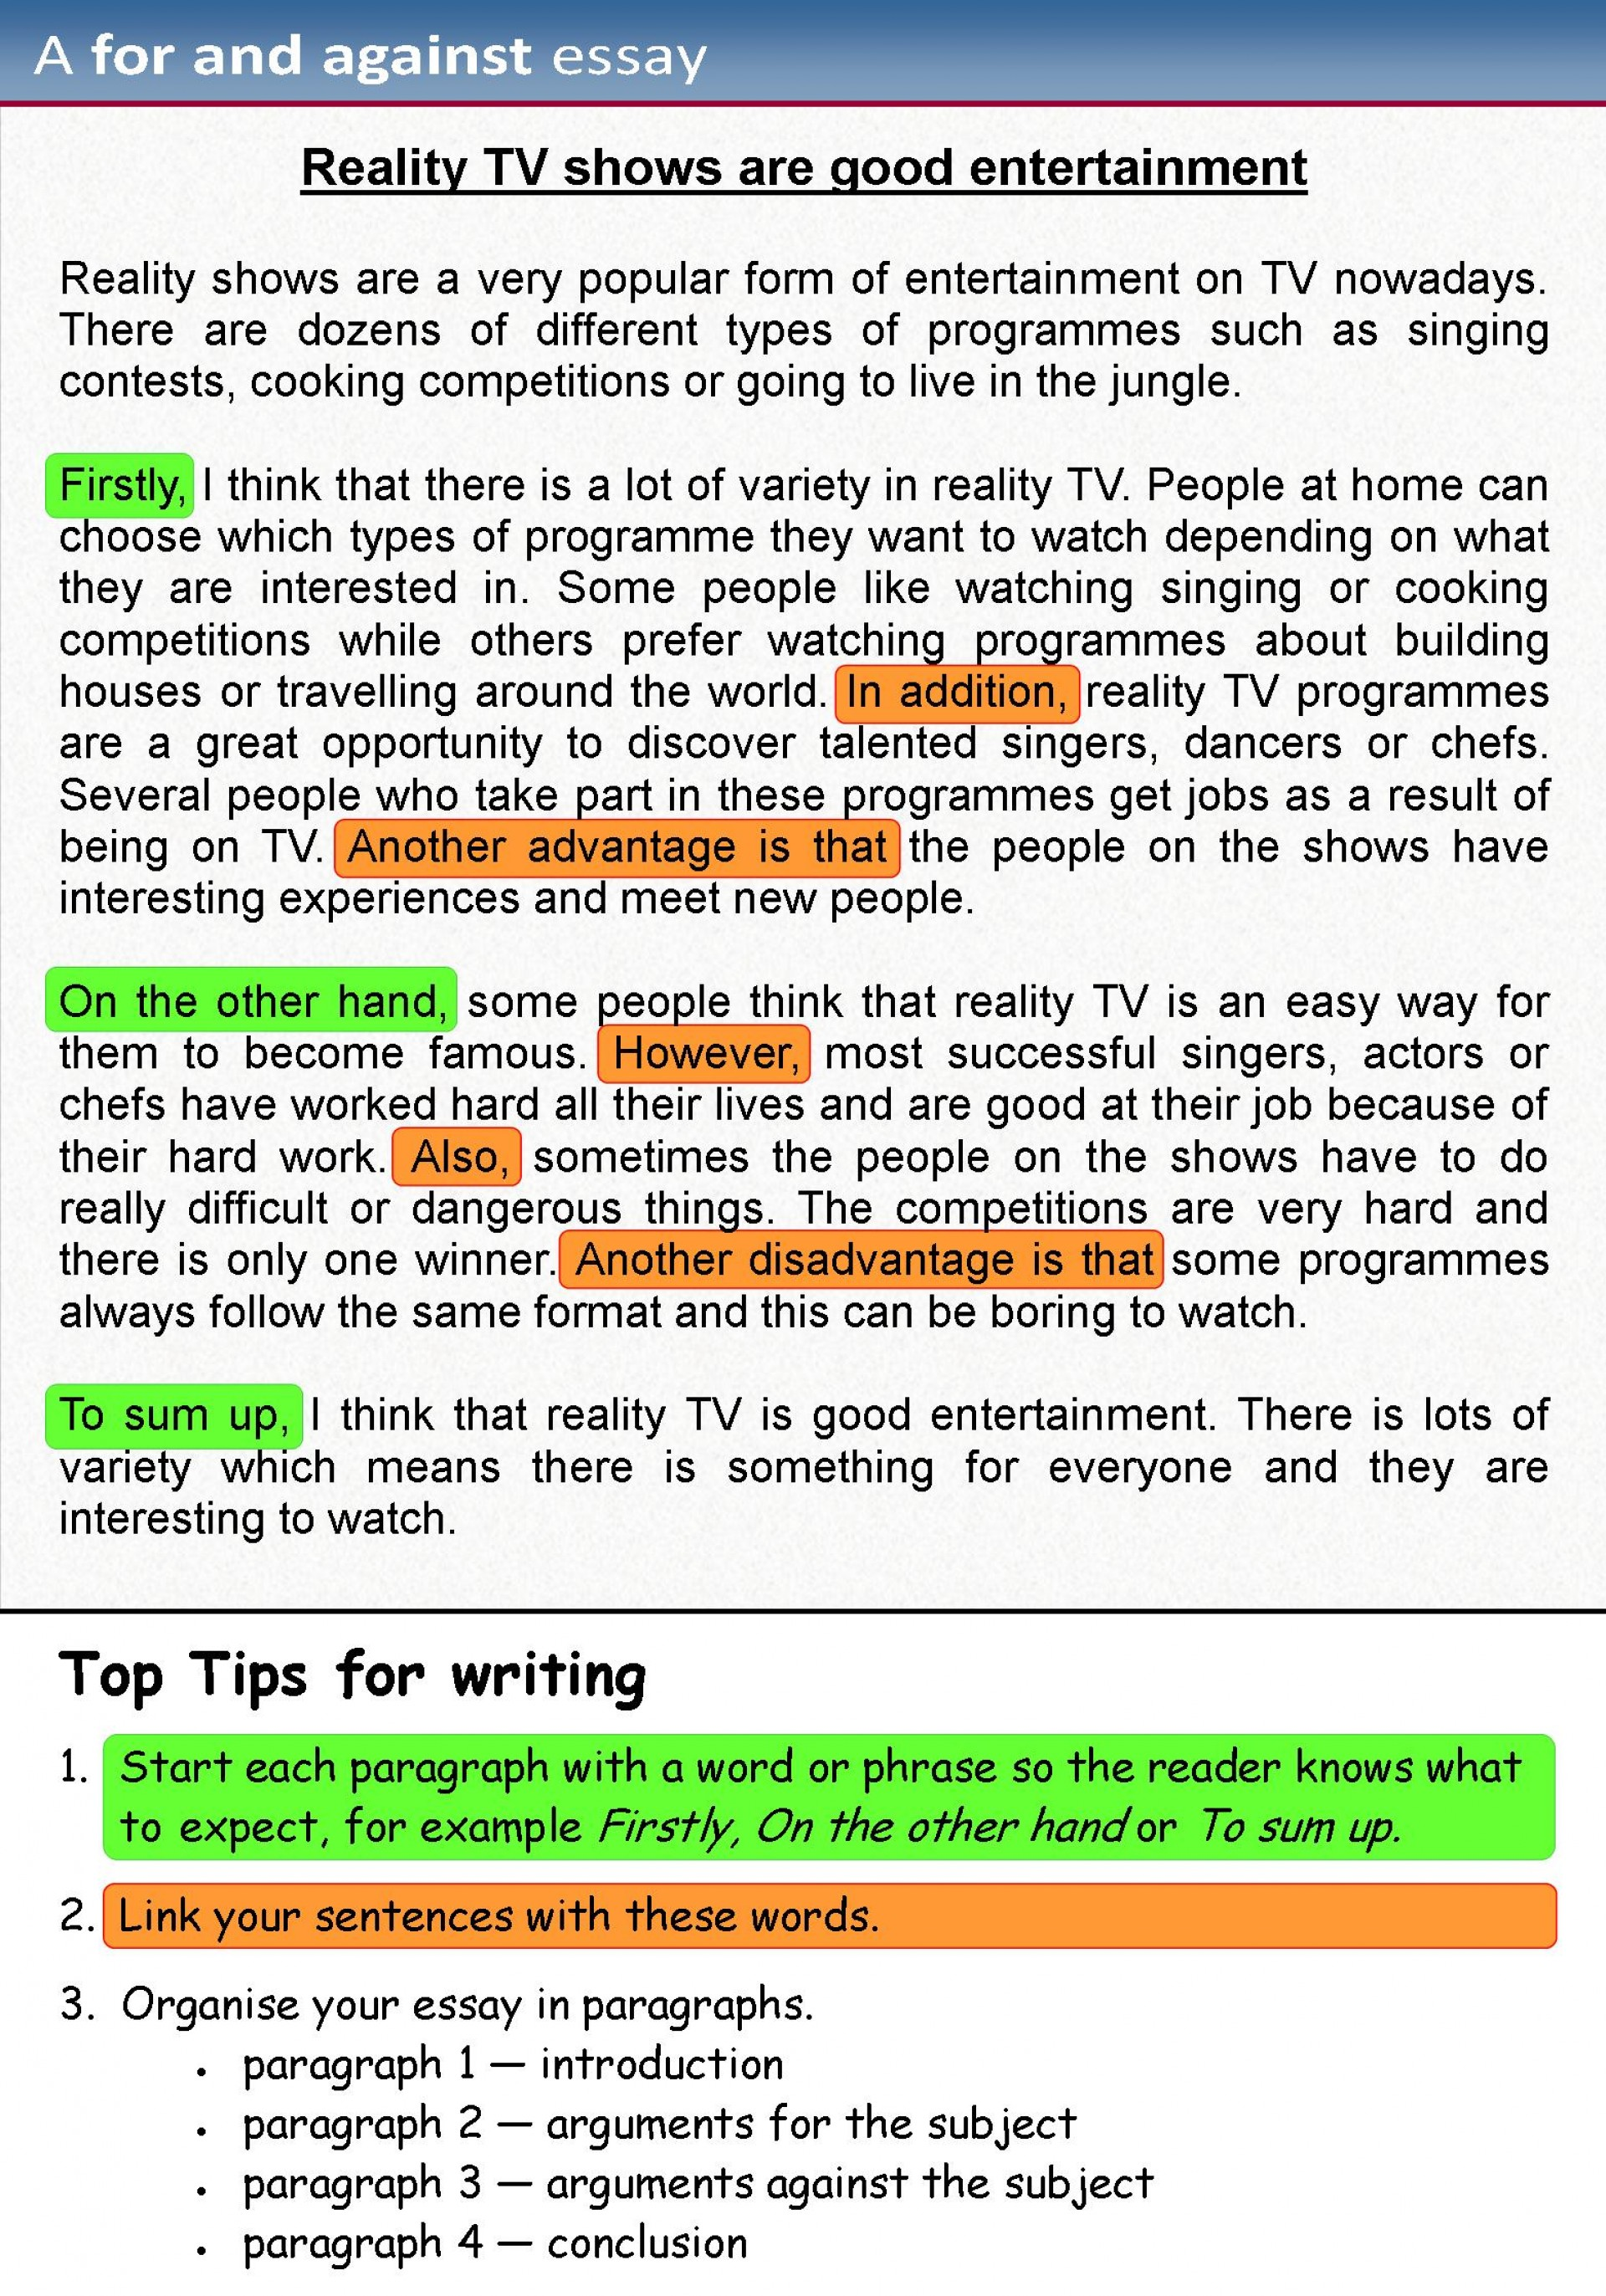 016 For Against Essay 1 Funny Essays Stupendous Topics High School Students About 1920